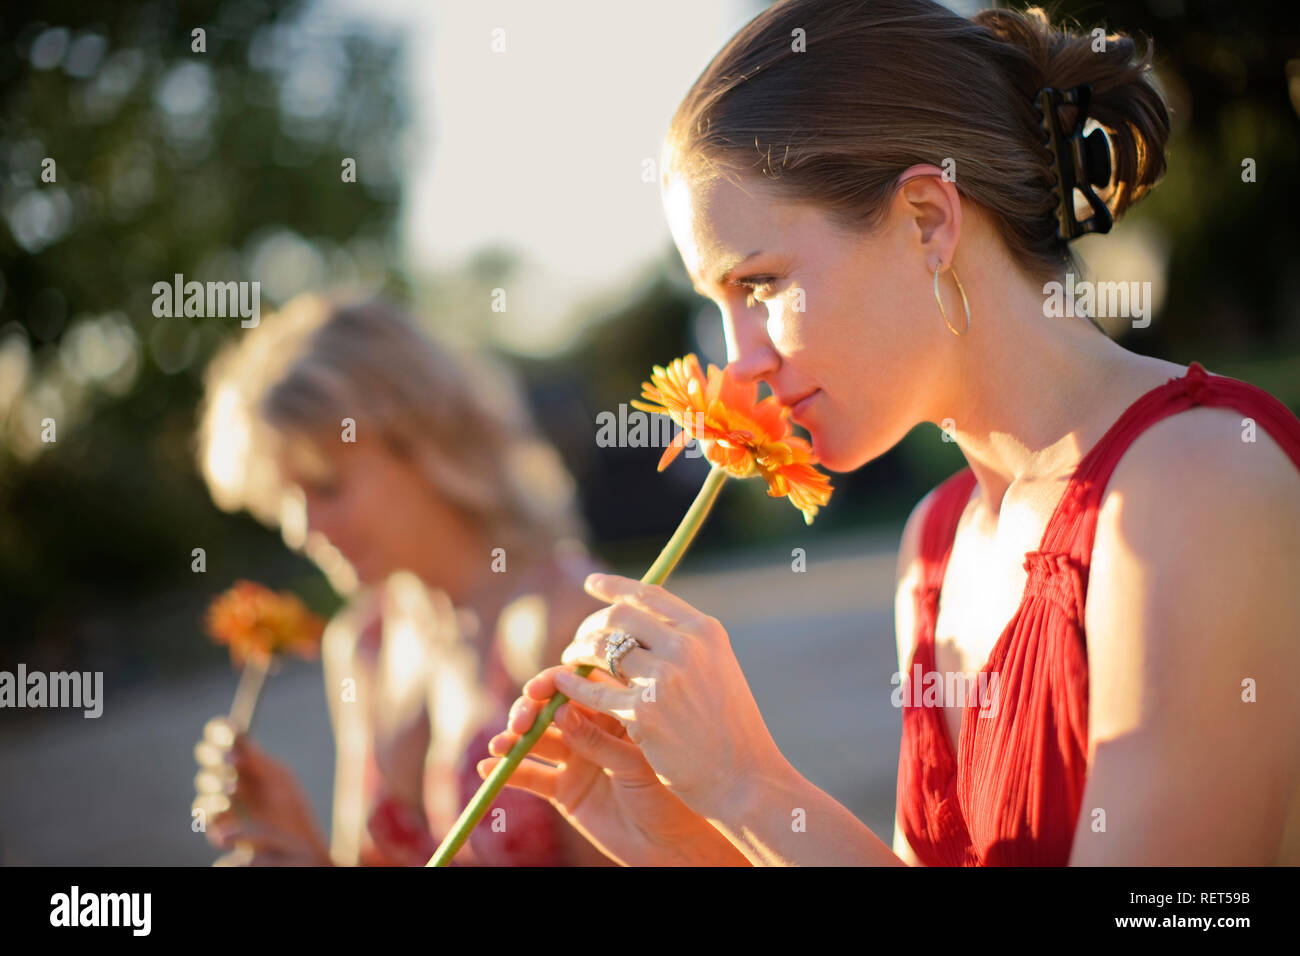 Young woman smelling an orange flower while sitting next to her friend in the sunshine. - Stock Image